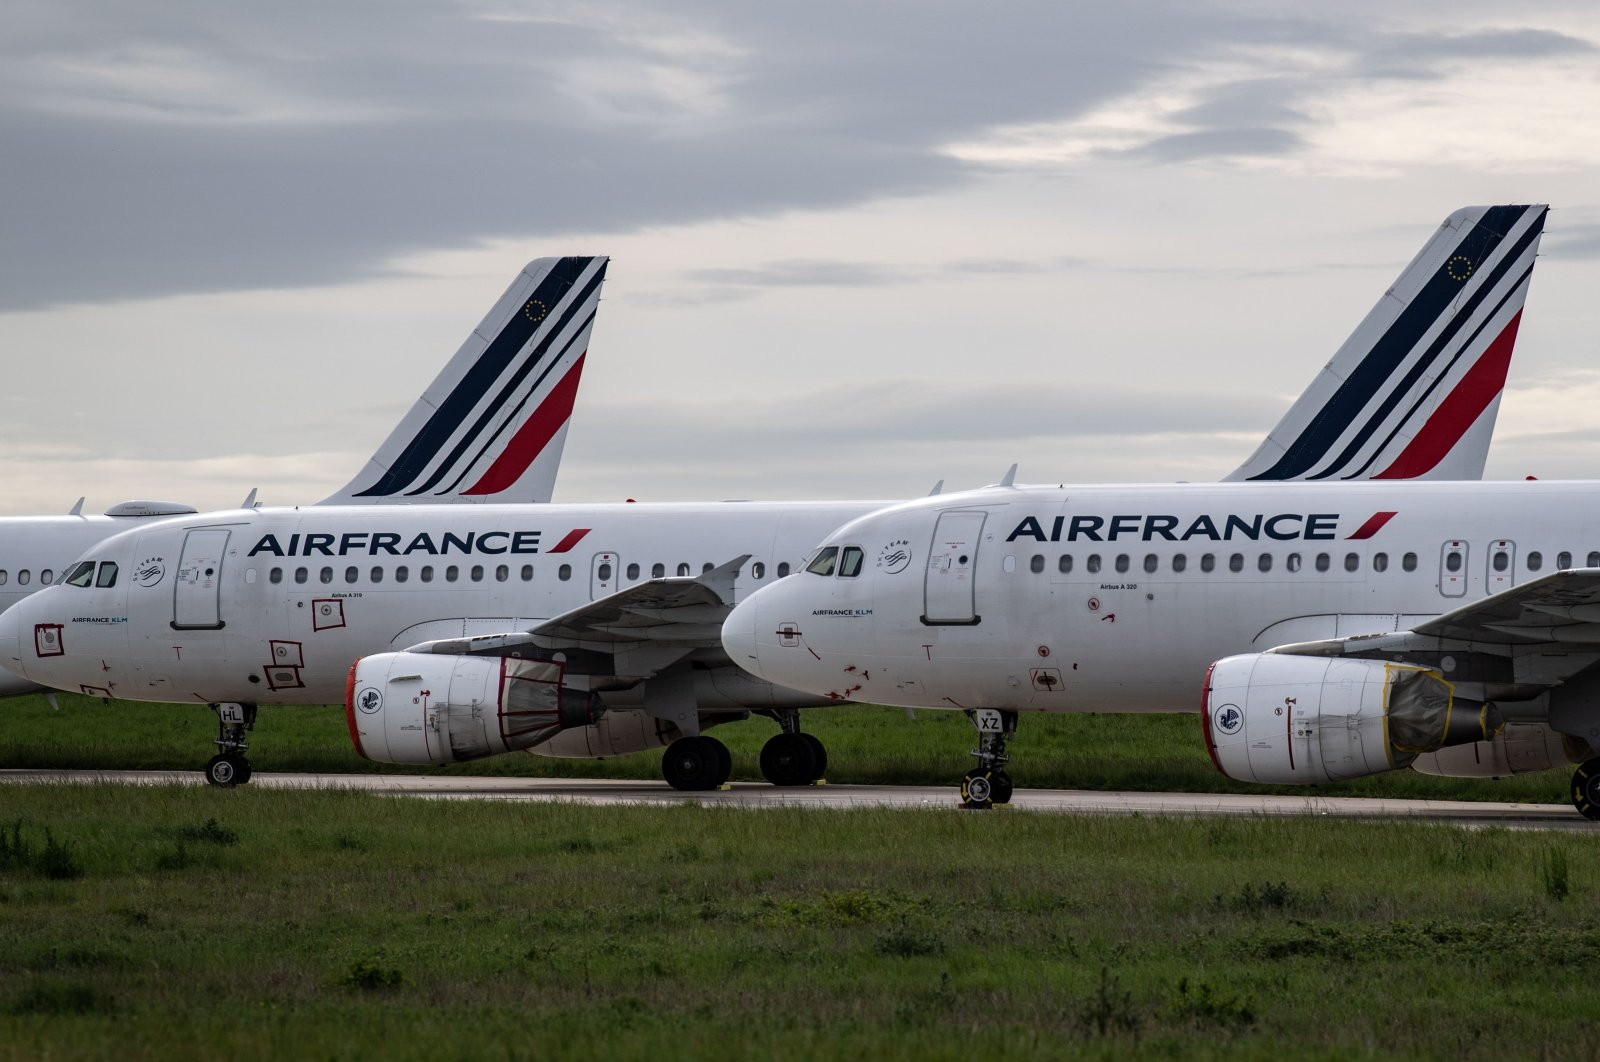 Air France planes parked on the tarmac at Paris Charles de Gaulle Airport in Roissy, France, April 30, 2020. (AFP Photo)